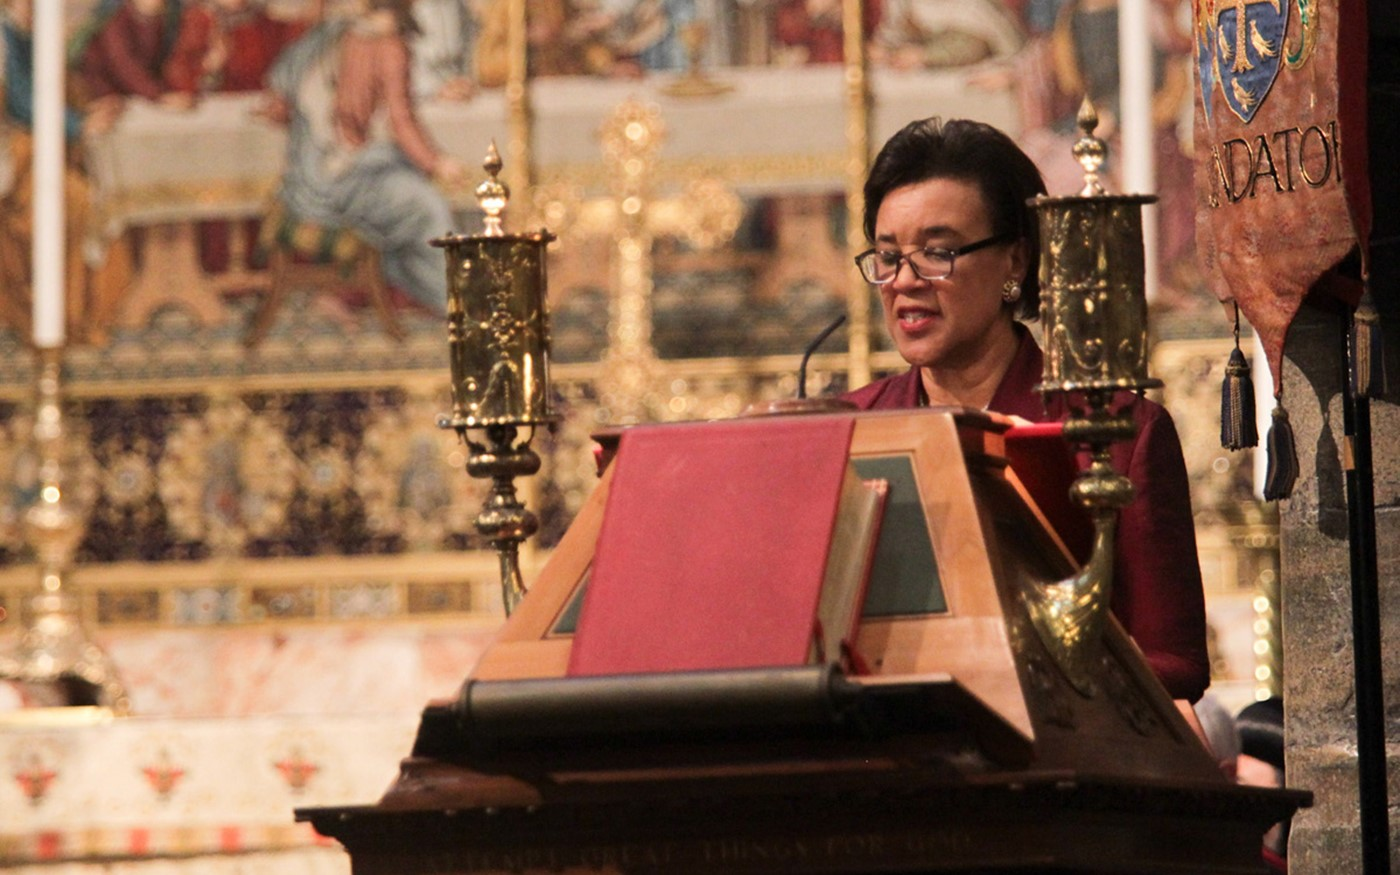 The Right Honourable The Baroness Scotland of Asthal QC, Secretary-General of the Commonwealth, reads St Luke 16: 19-end